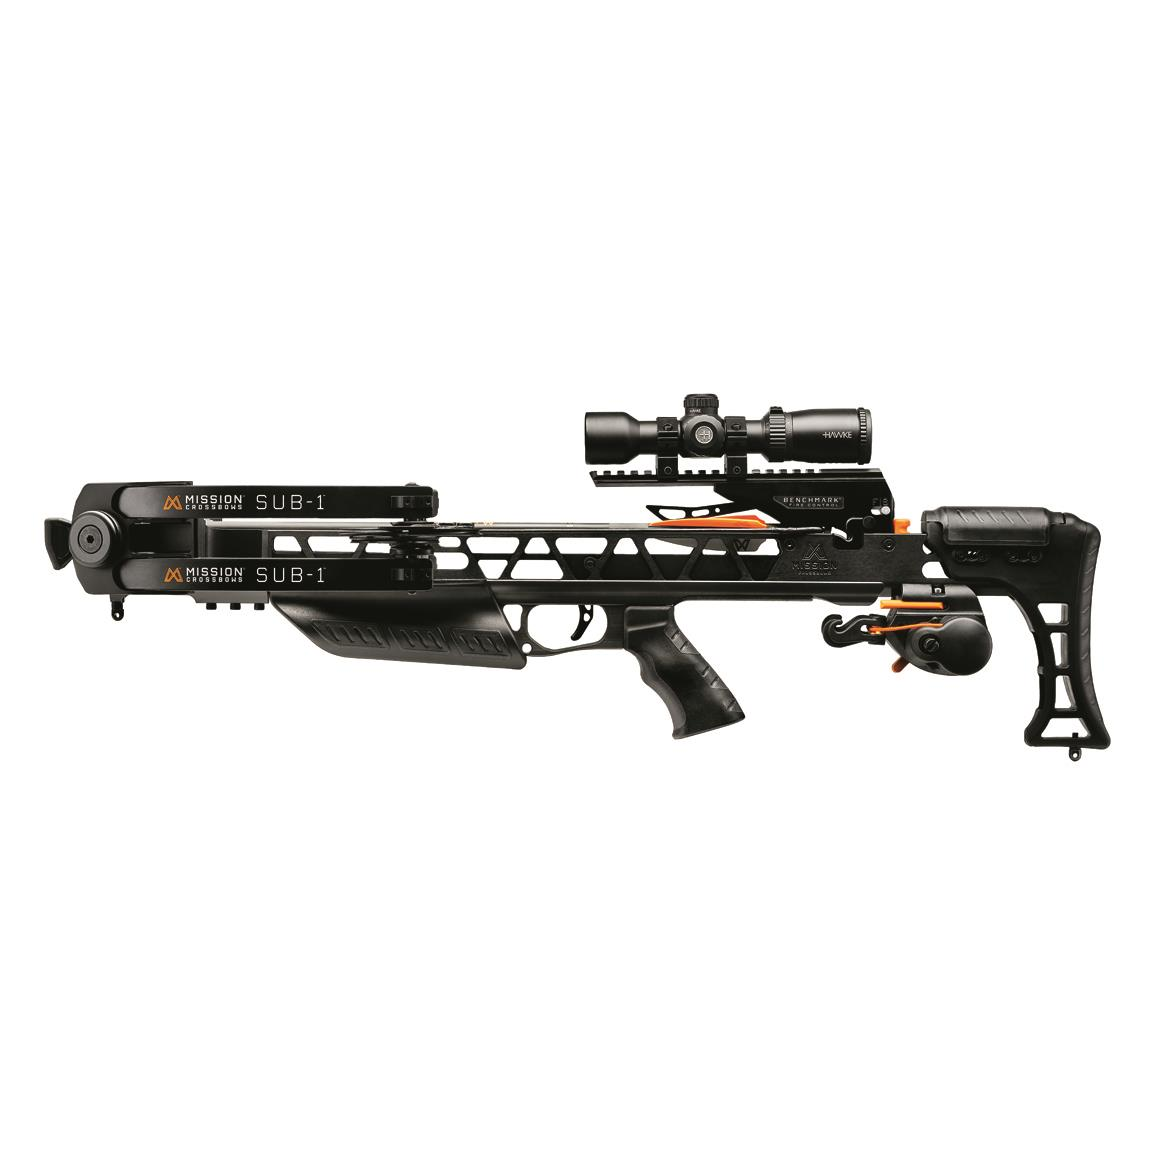 Mission Sub-1 Crossbow with Pro Accessory Kit, Black